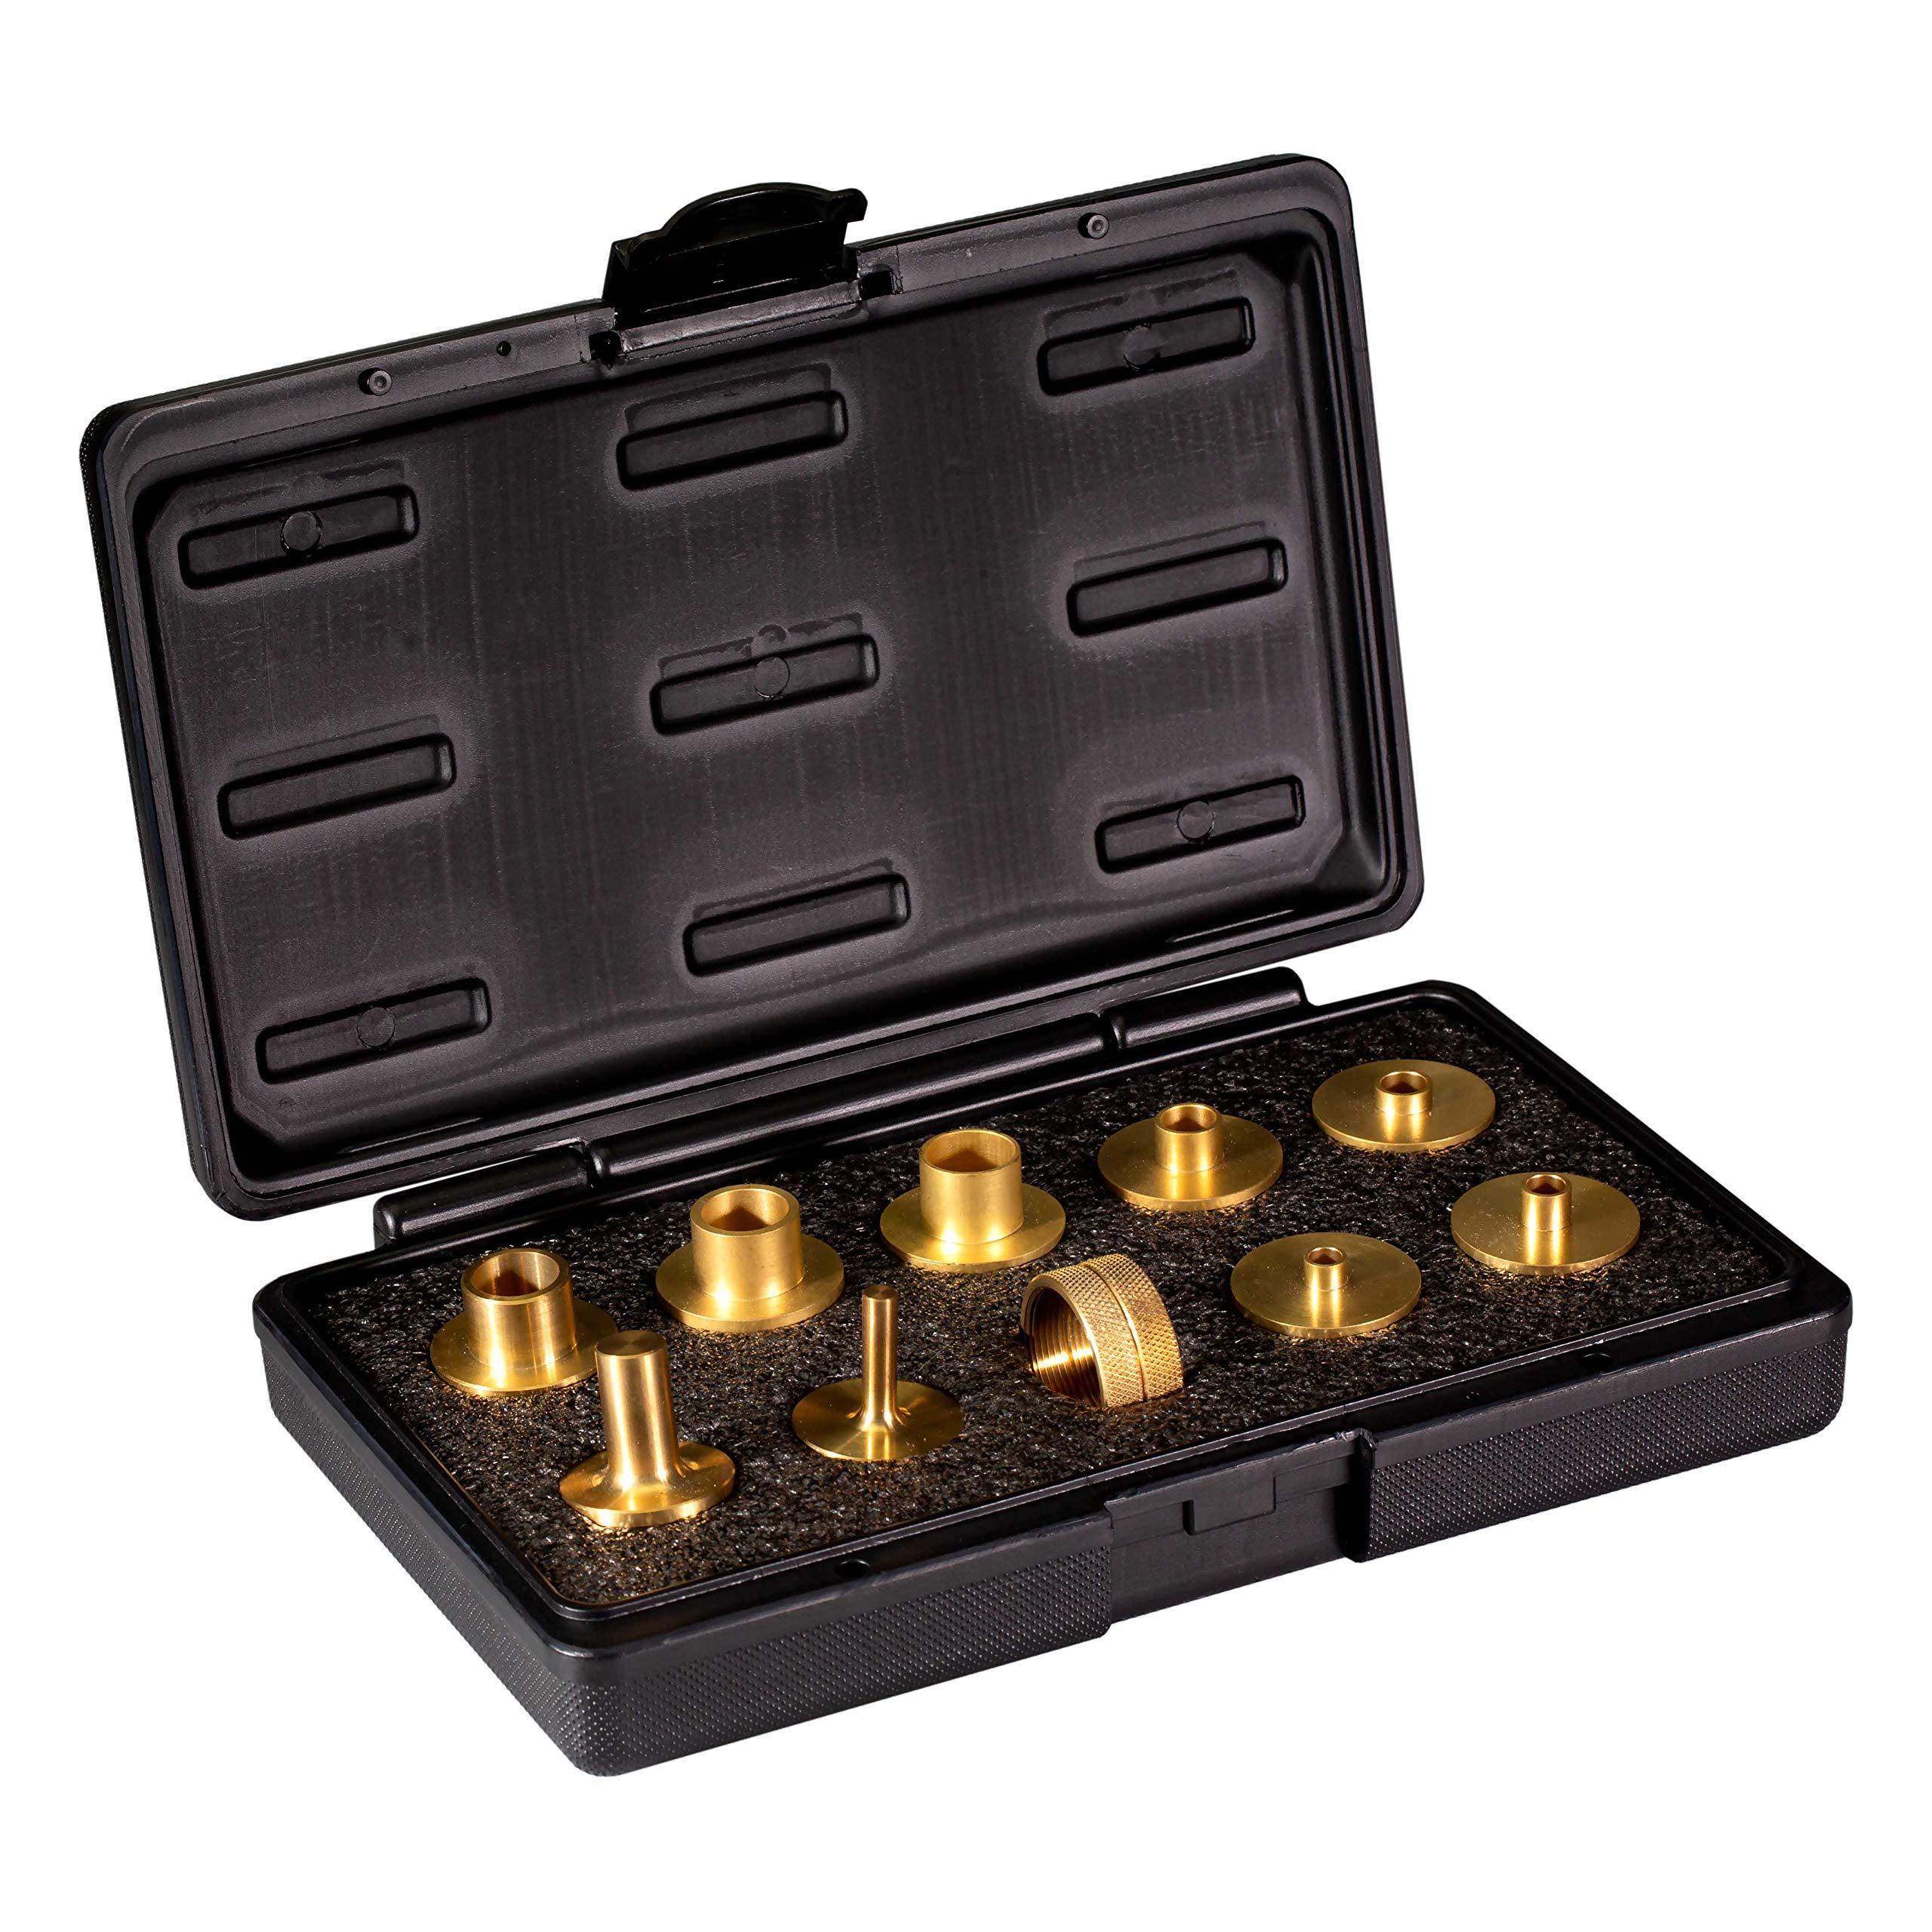 POWERTEC 71221 11-Piece Brass Router Guide Bushing Set | Pro Style Router Template Kit with Shank Bit Set and Lock Nuts by POWERTEC